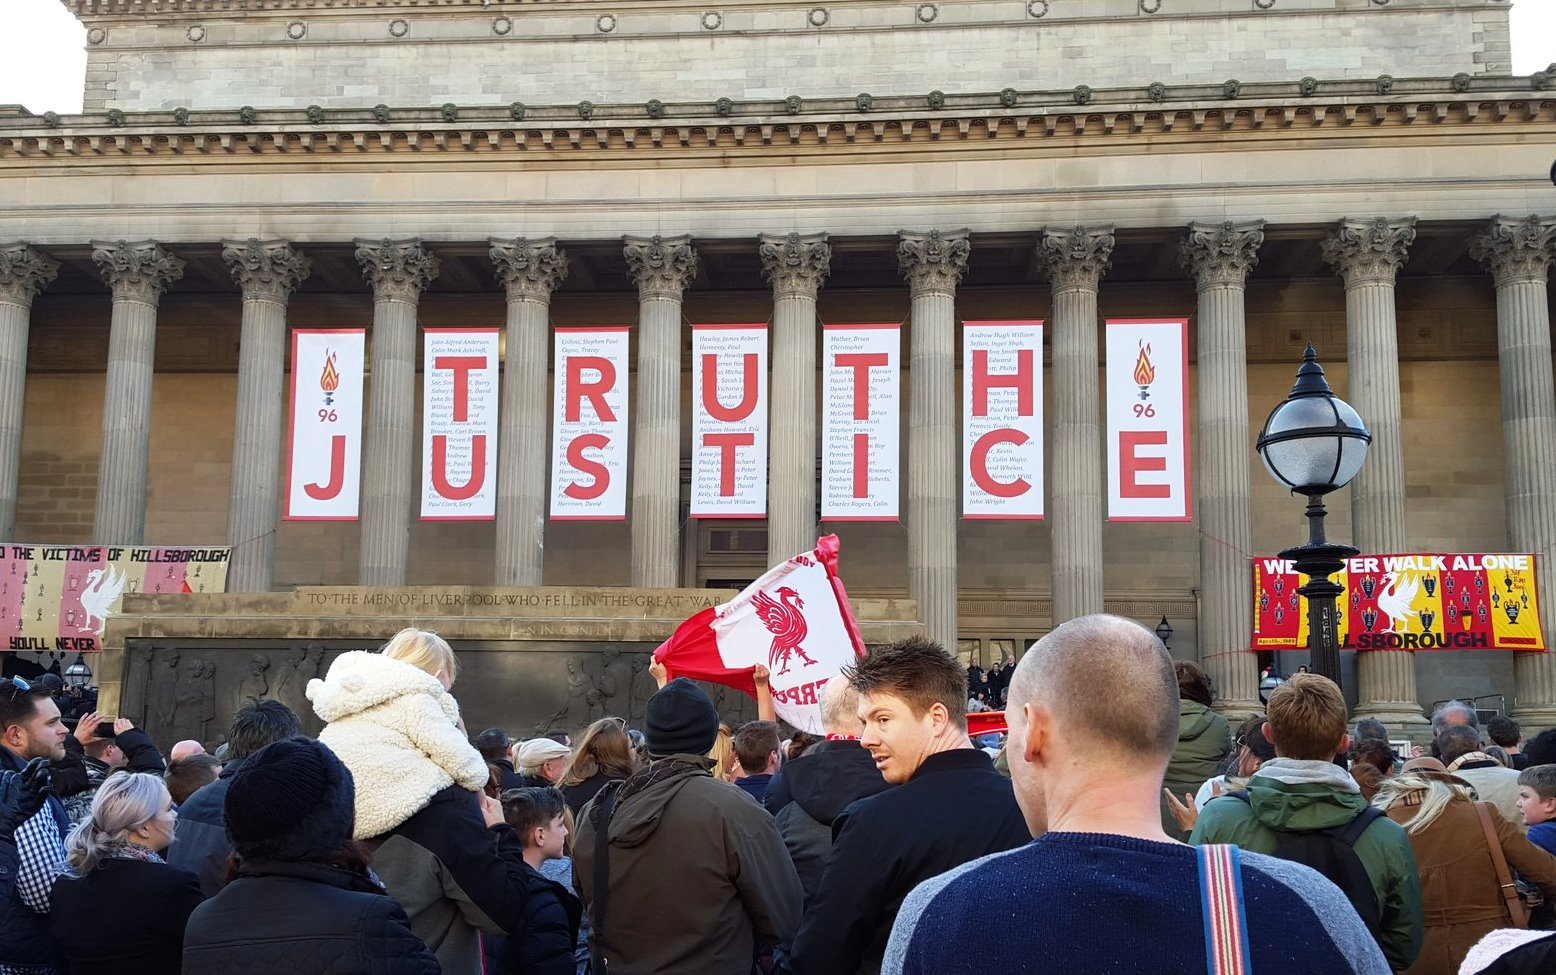 Prosecutors to decide on Hillsborough charges